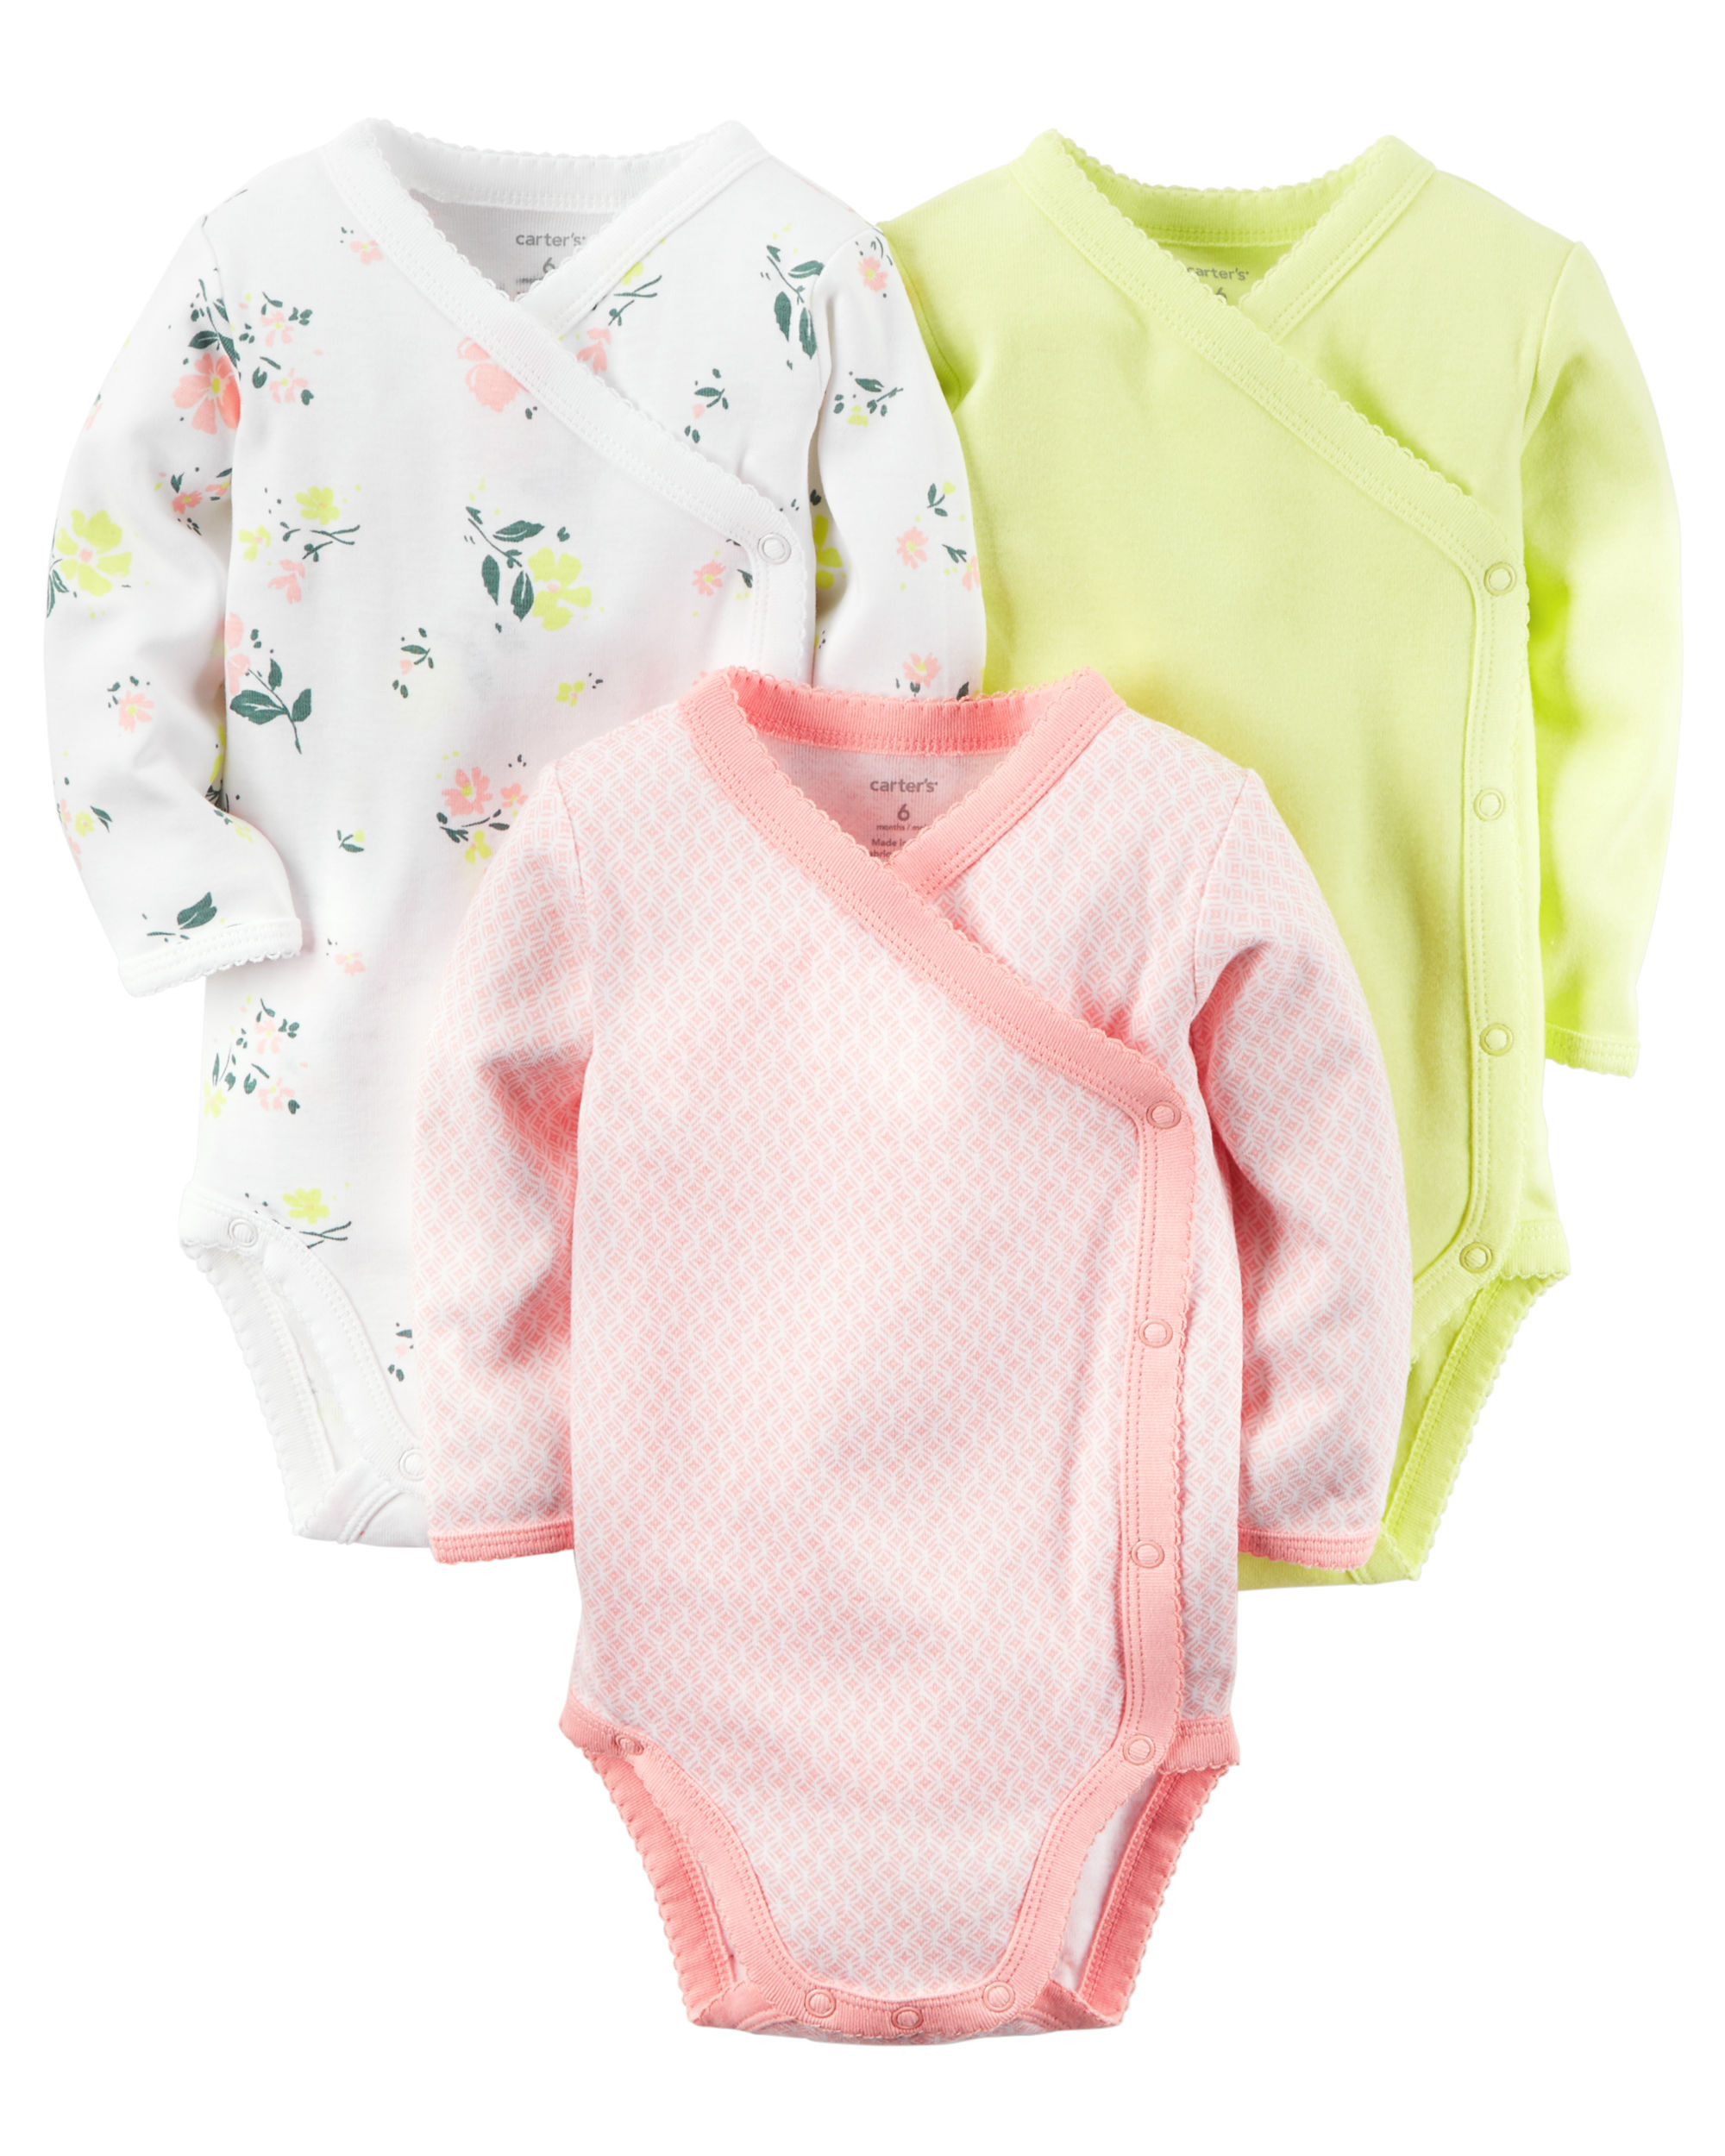 3-Pack Long-Sleeve Side-Snap Bodysuits - $14.40